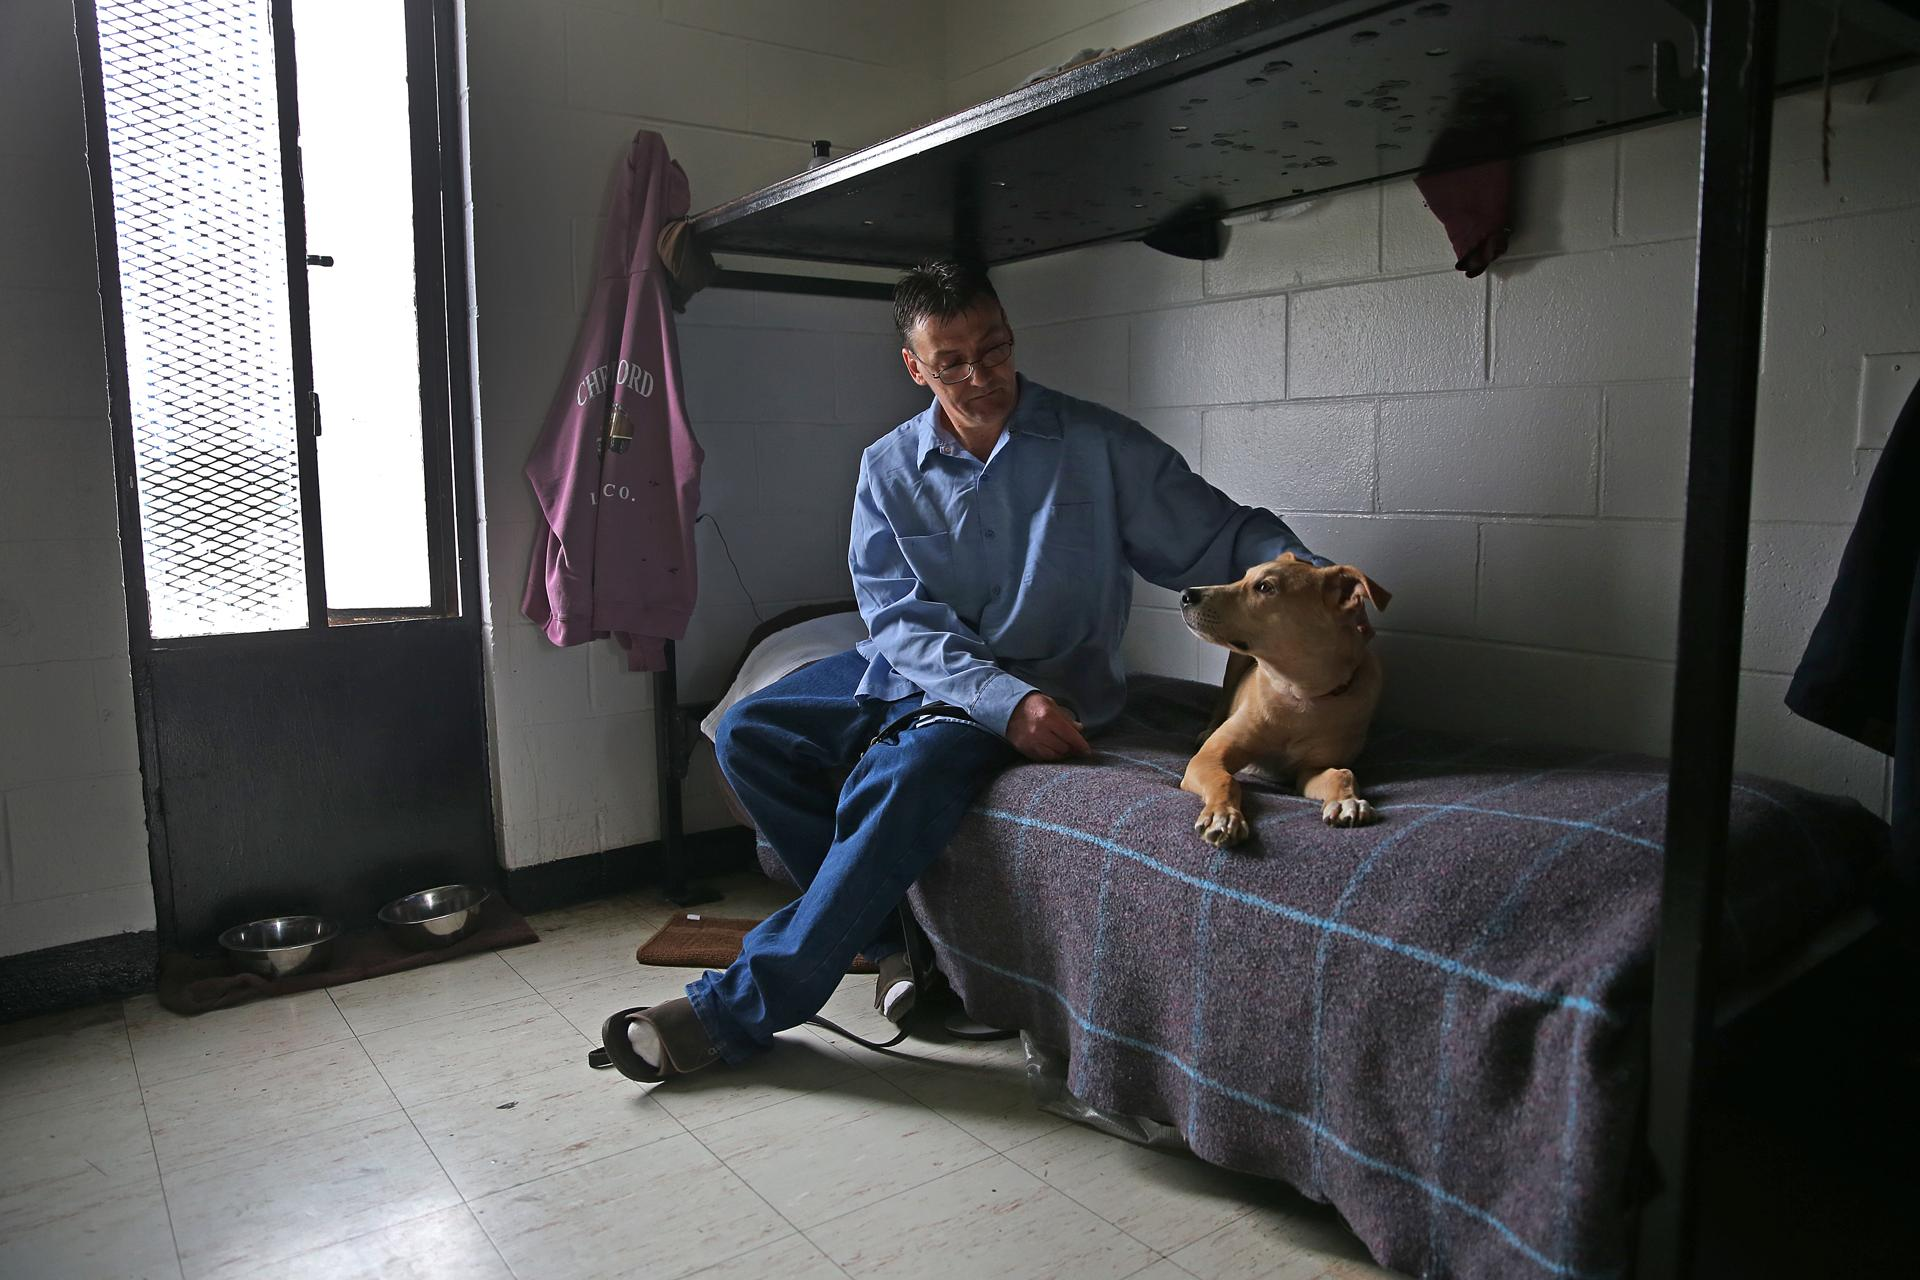 Bobby, an inmate at the Worcester County Jail & House of Correction, shared space on his bunk with Gabe, a shelter dog.